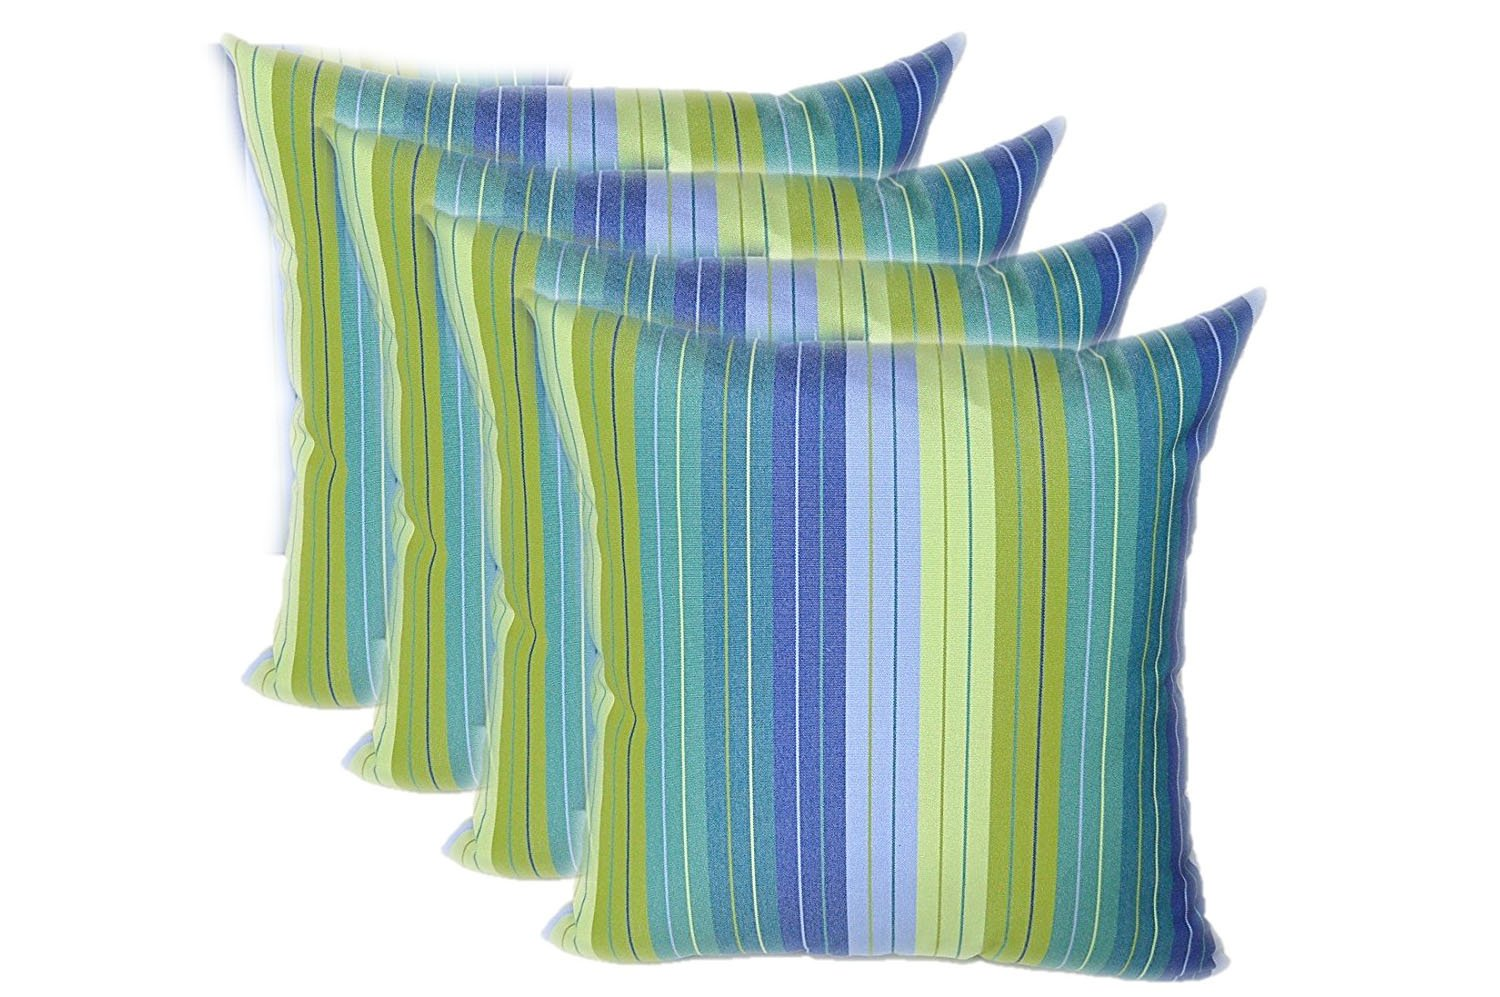 RSH Decor Set of 4 Indoor Outdoor 17'' Square Decorative Throw Pillows - Sunbrella Seville Seaside Blue and Green Stripe